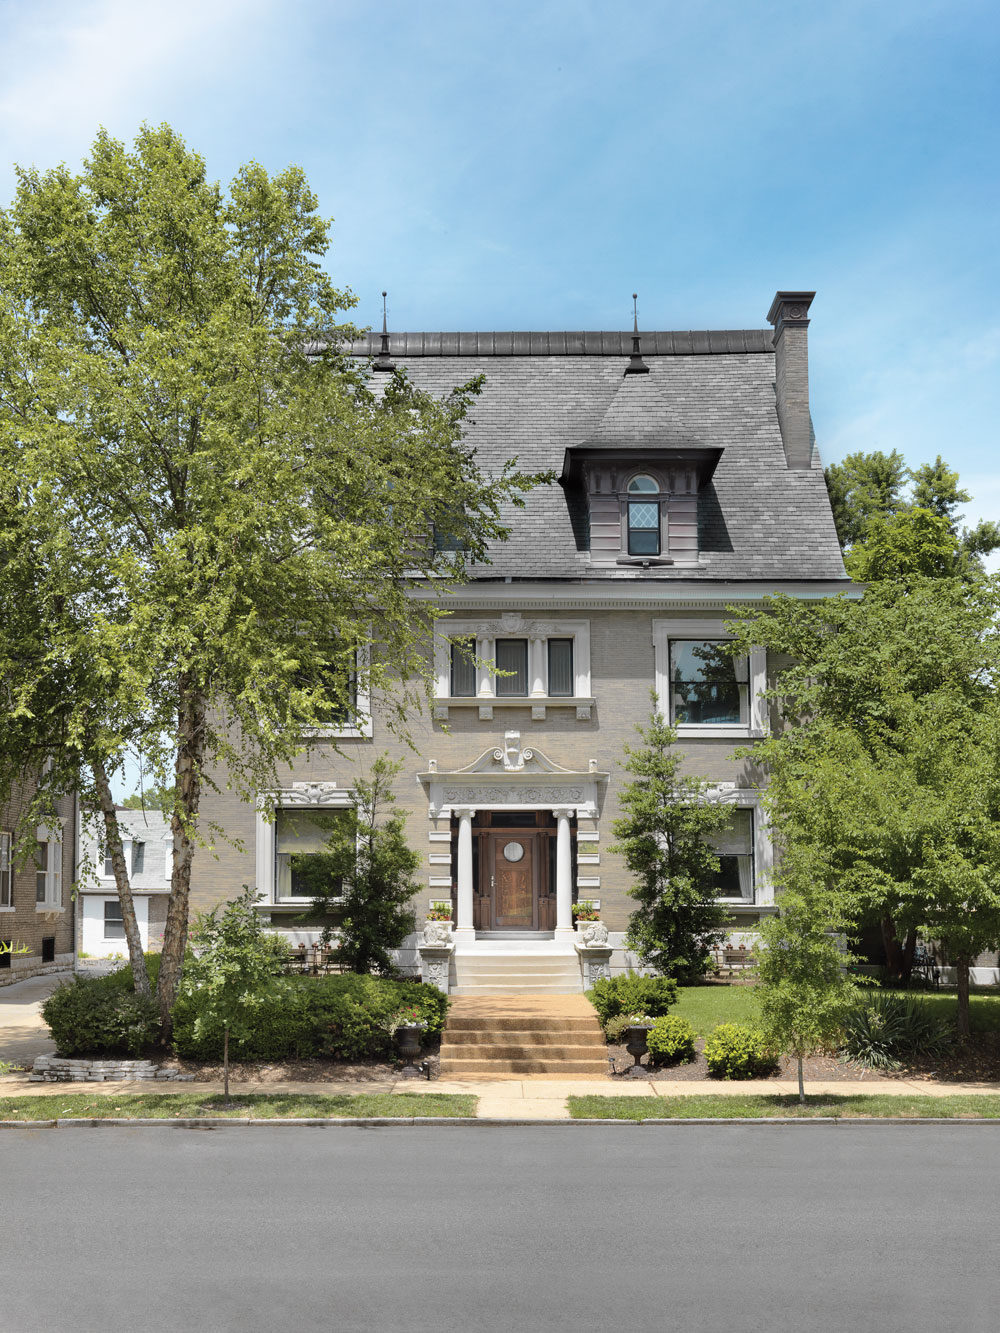 Beautiful Homes Of Instagram: The 10 Most Beautiful Homes In St. Louis